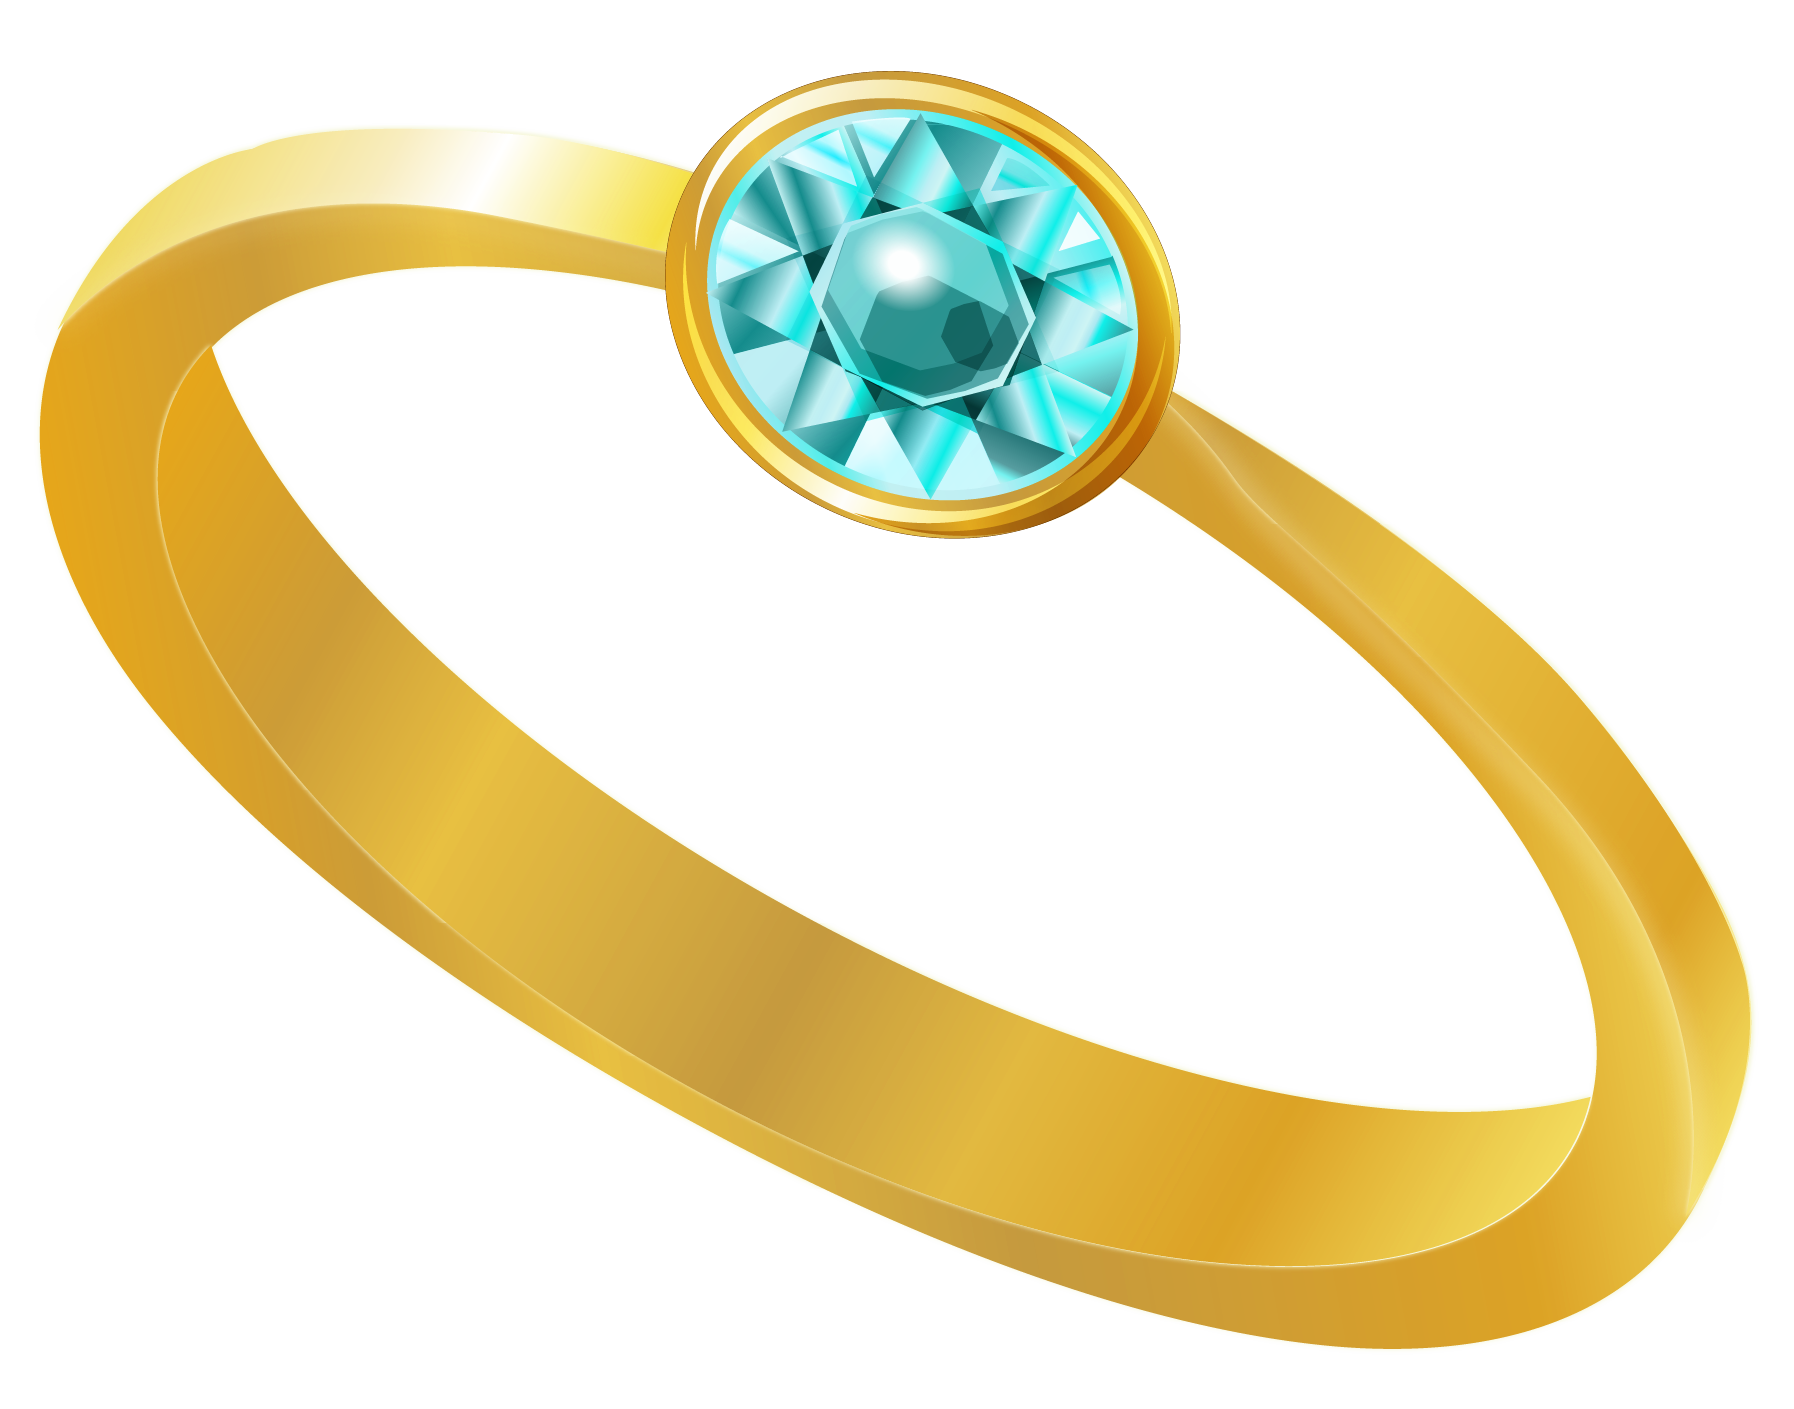 Jewelry clip. Golden ring with blue